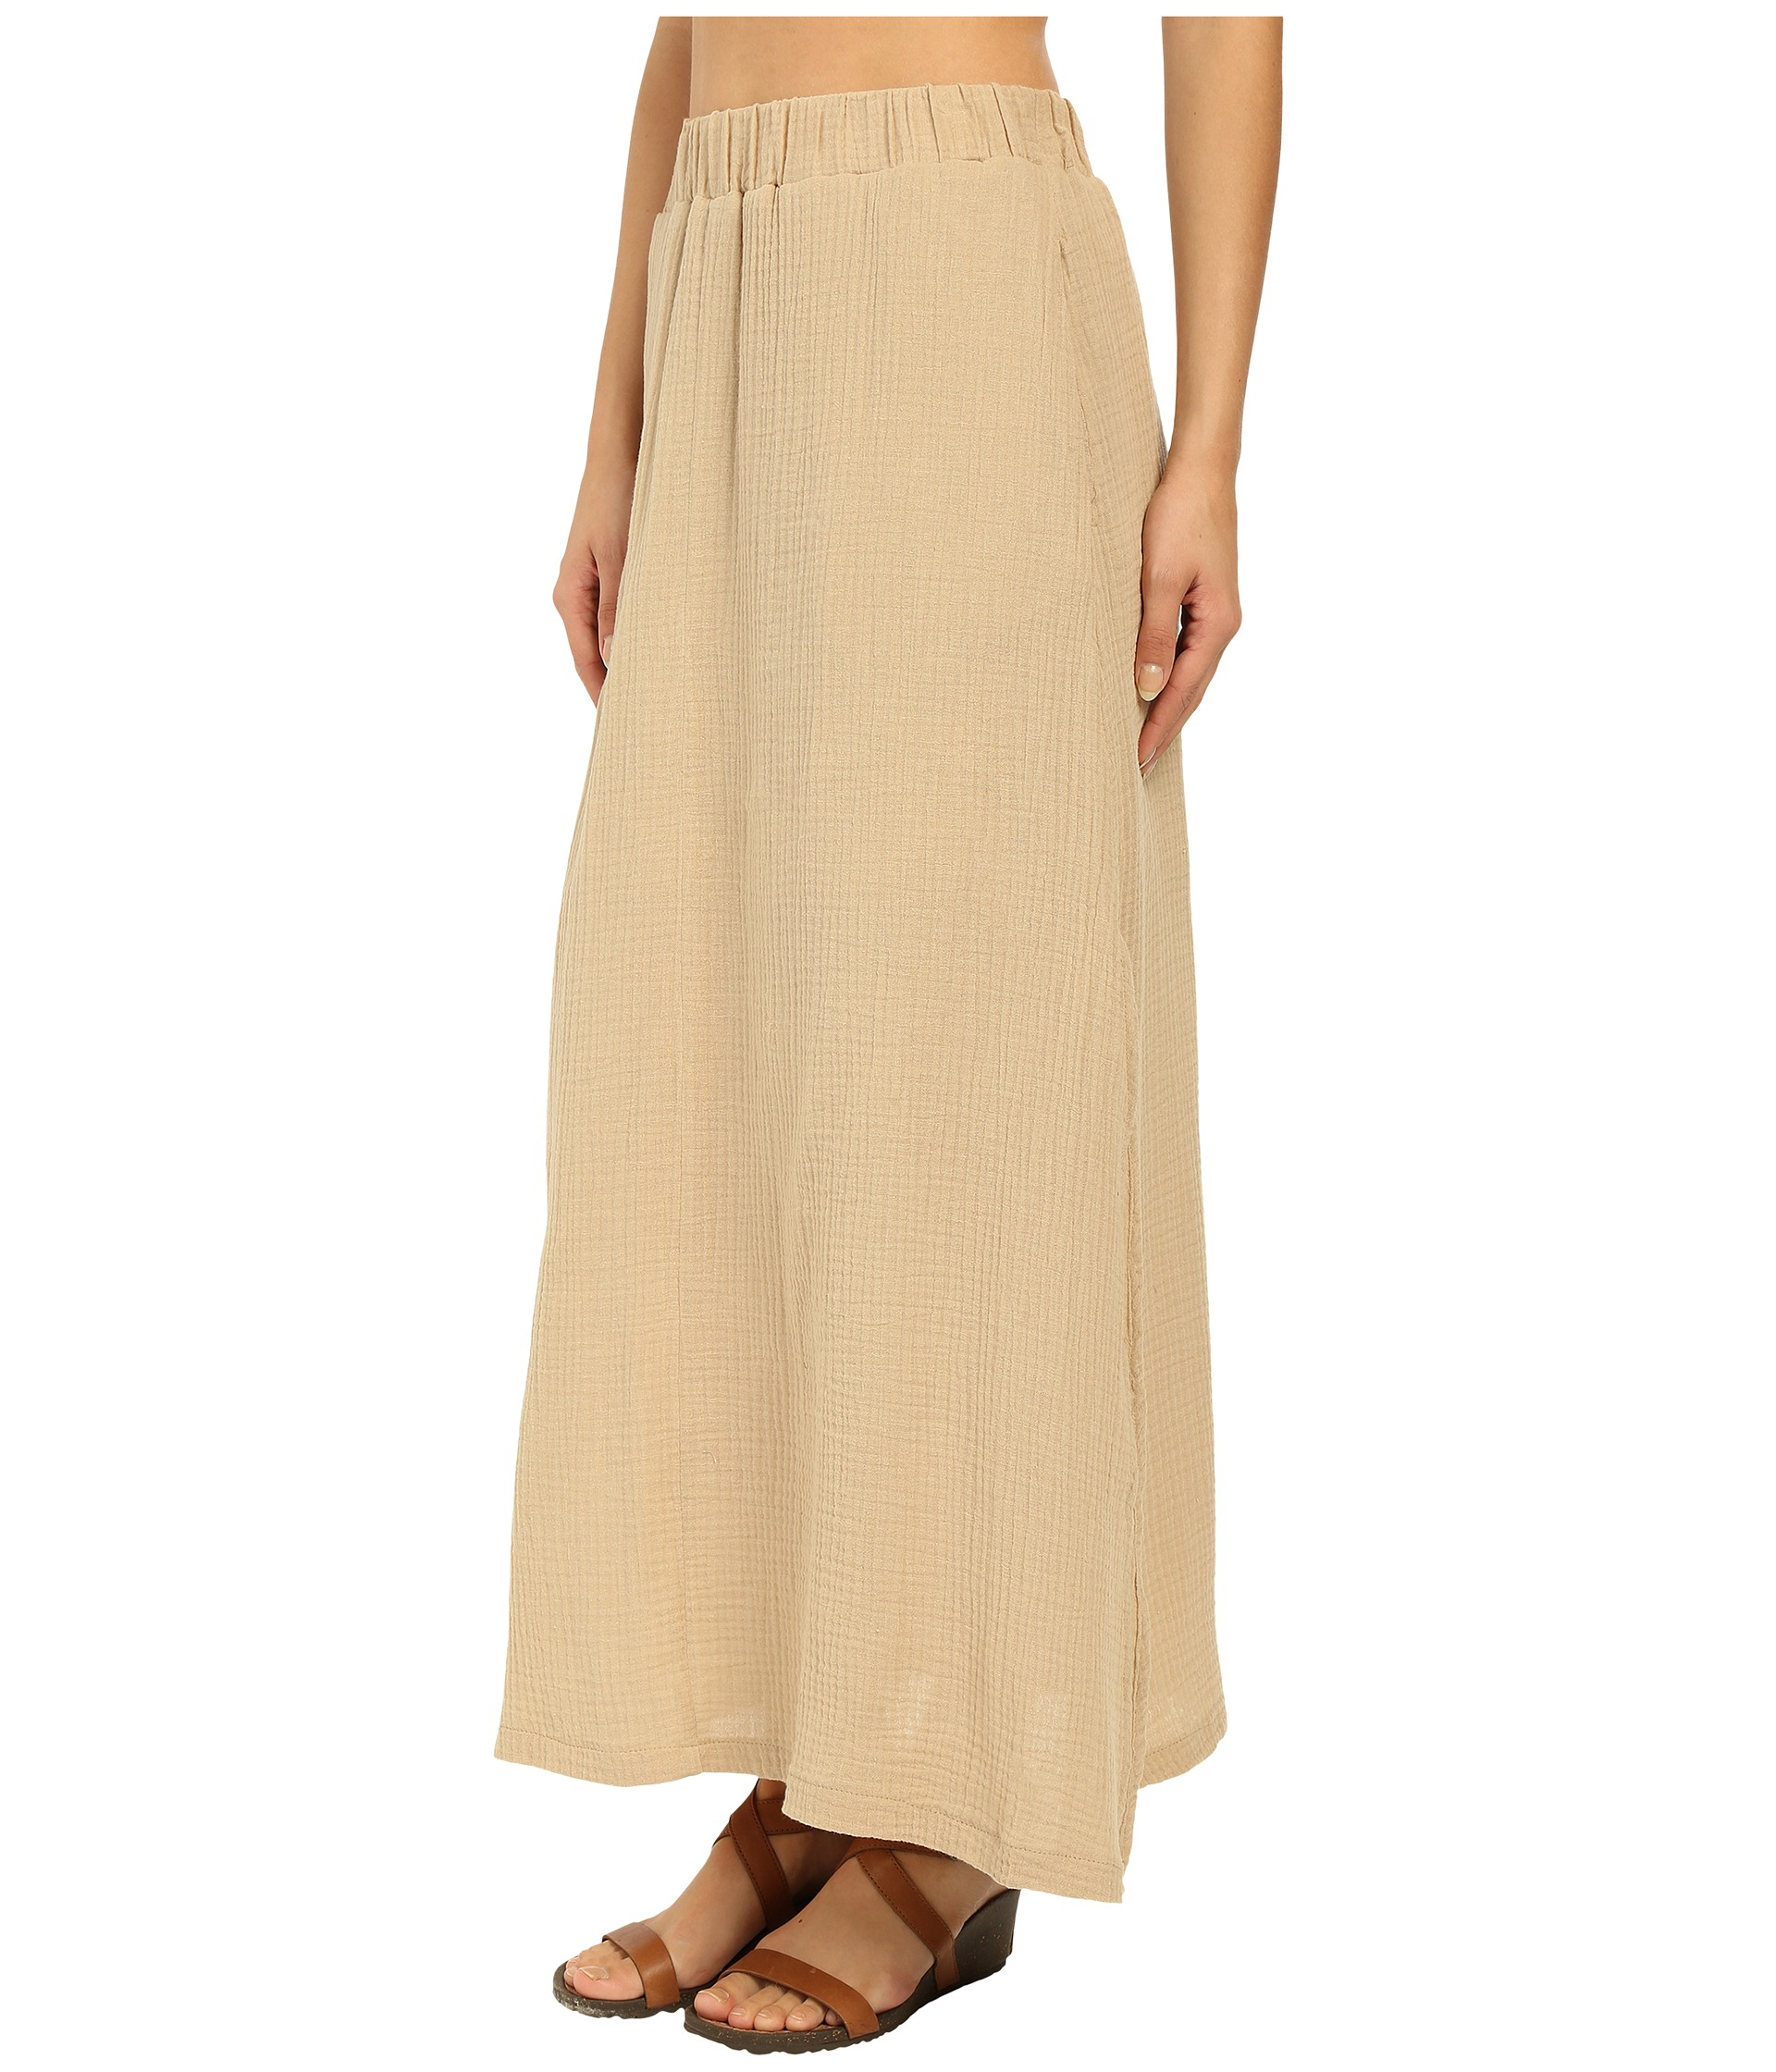 United by blue Sadie Maxi Skirt in Natural